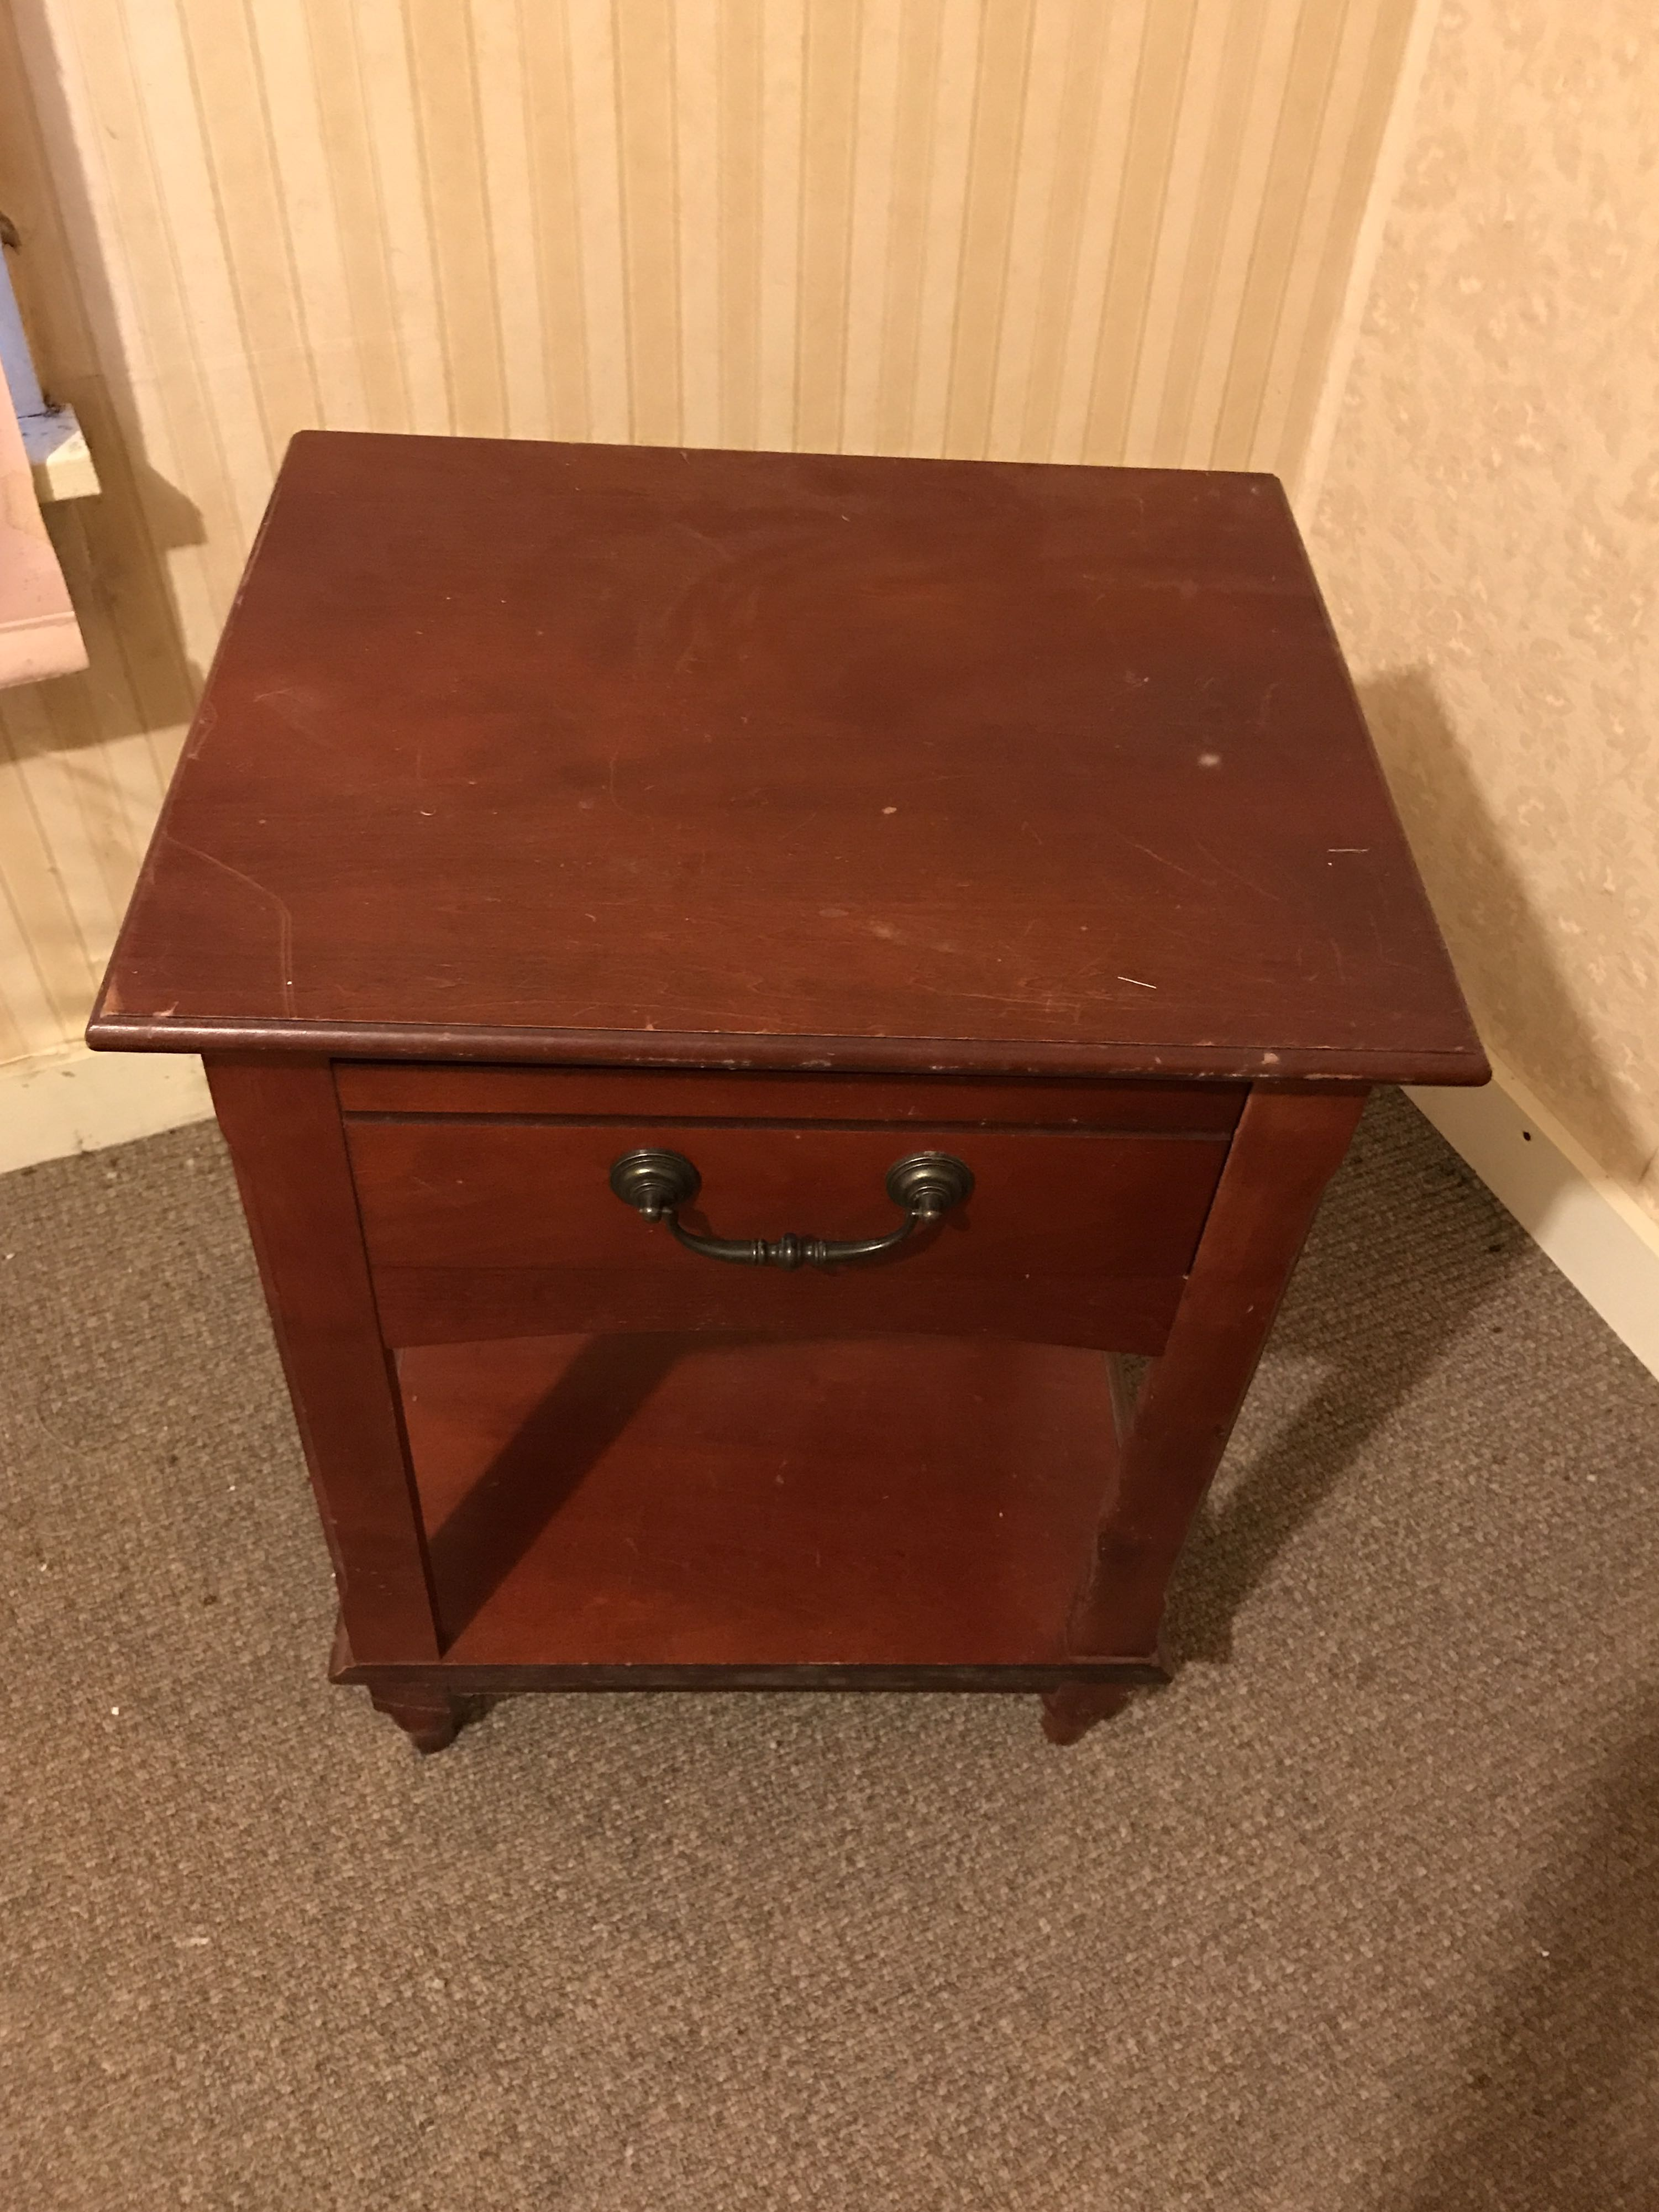 Heavy end table